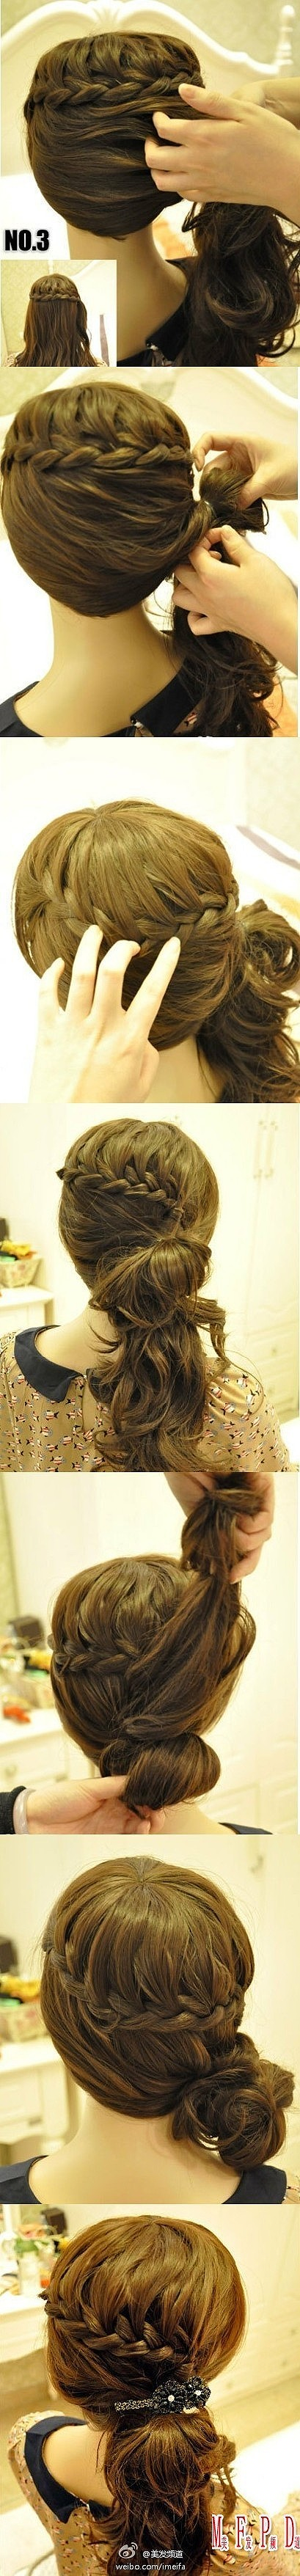 can't get enough of braids :)